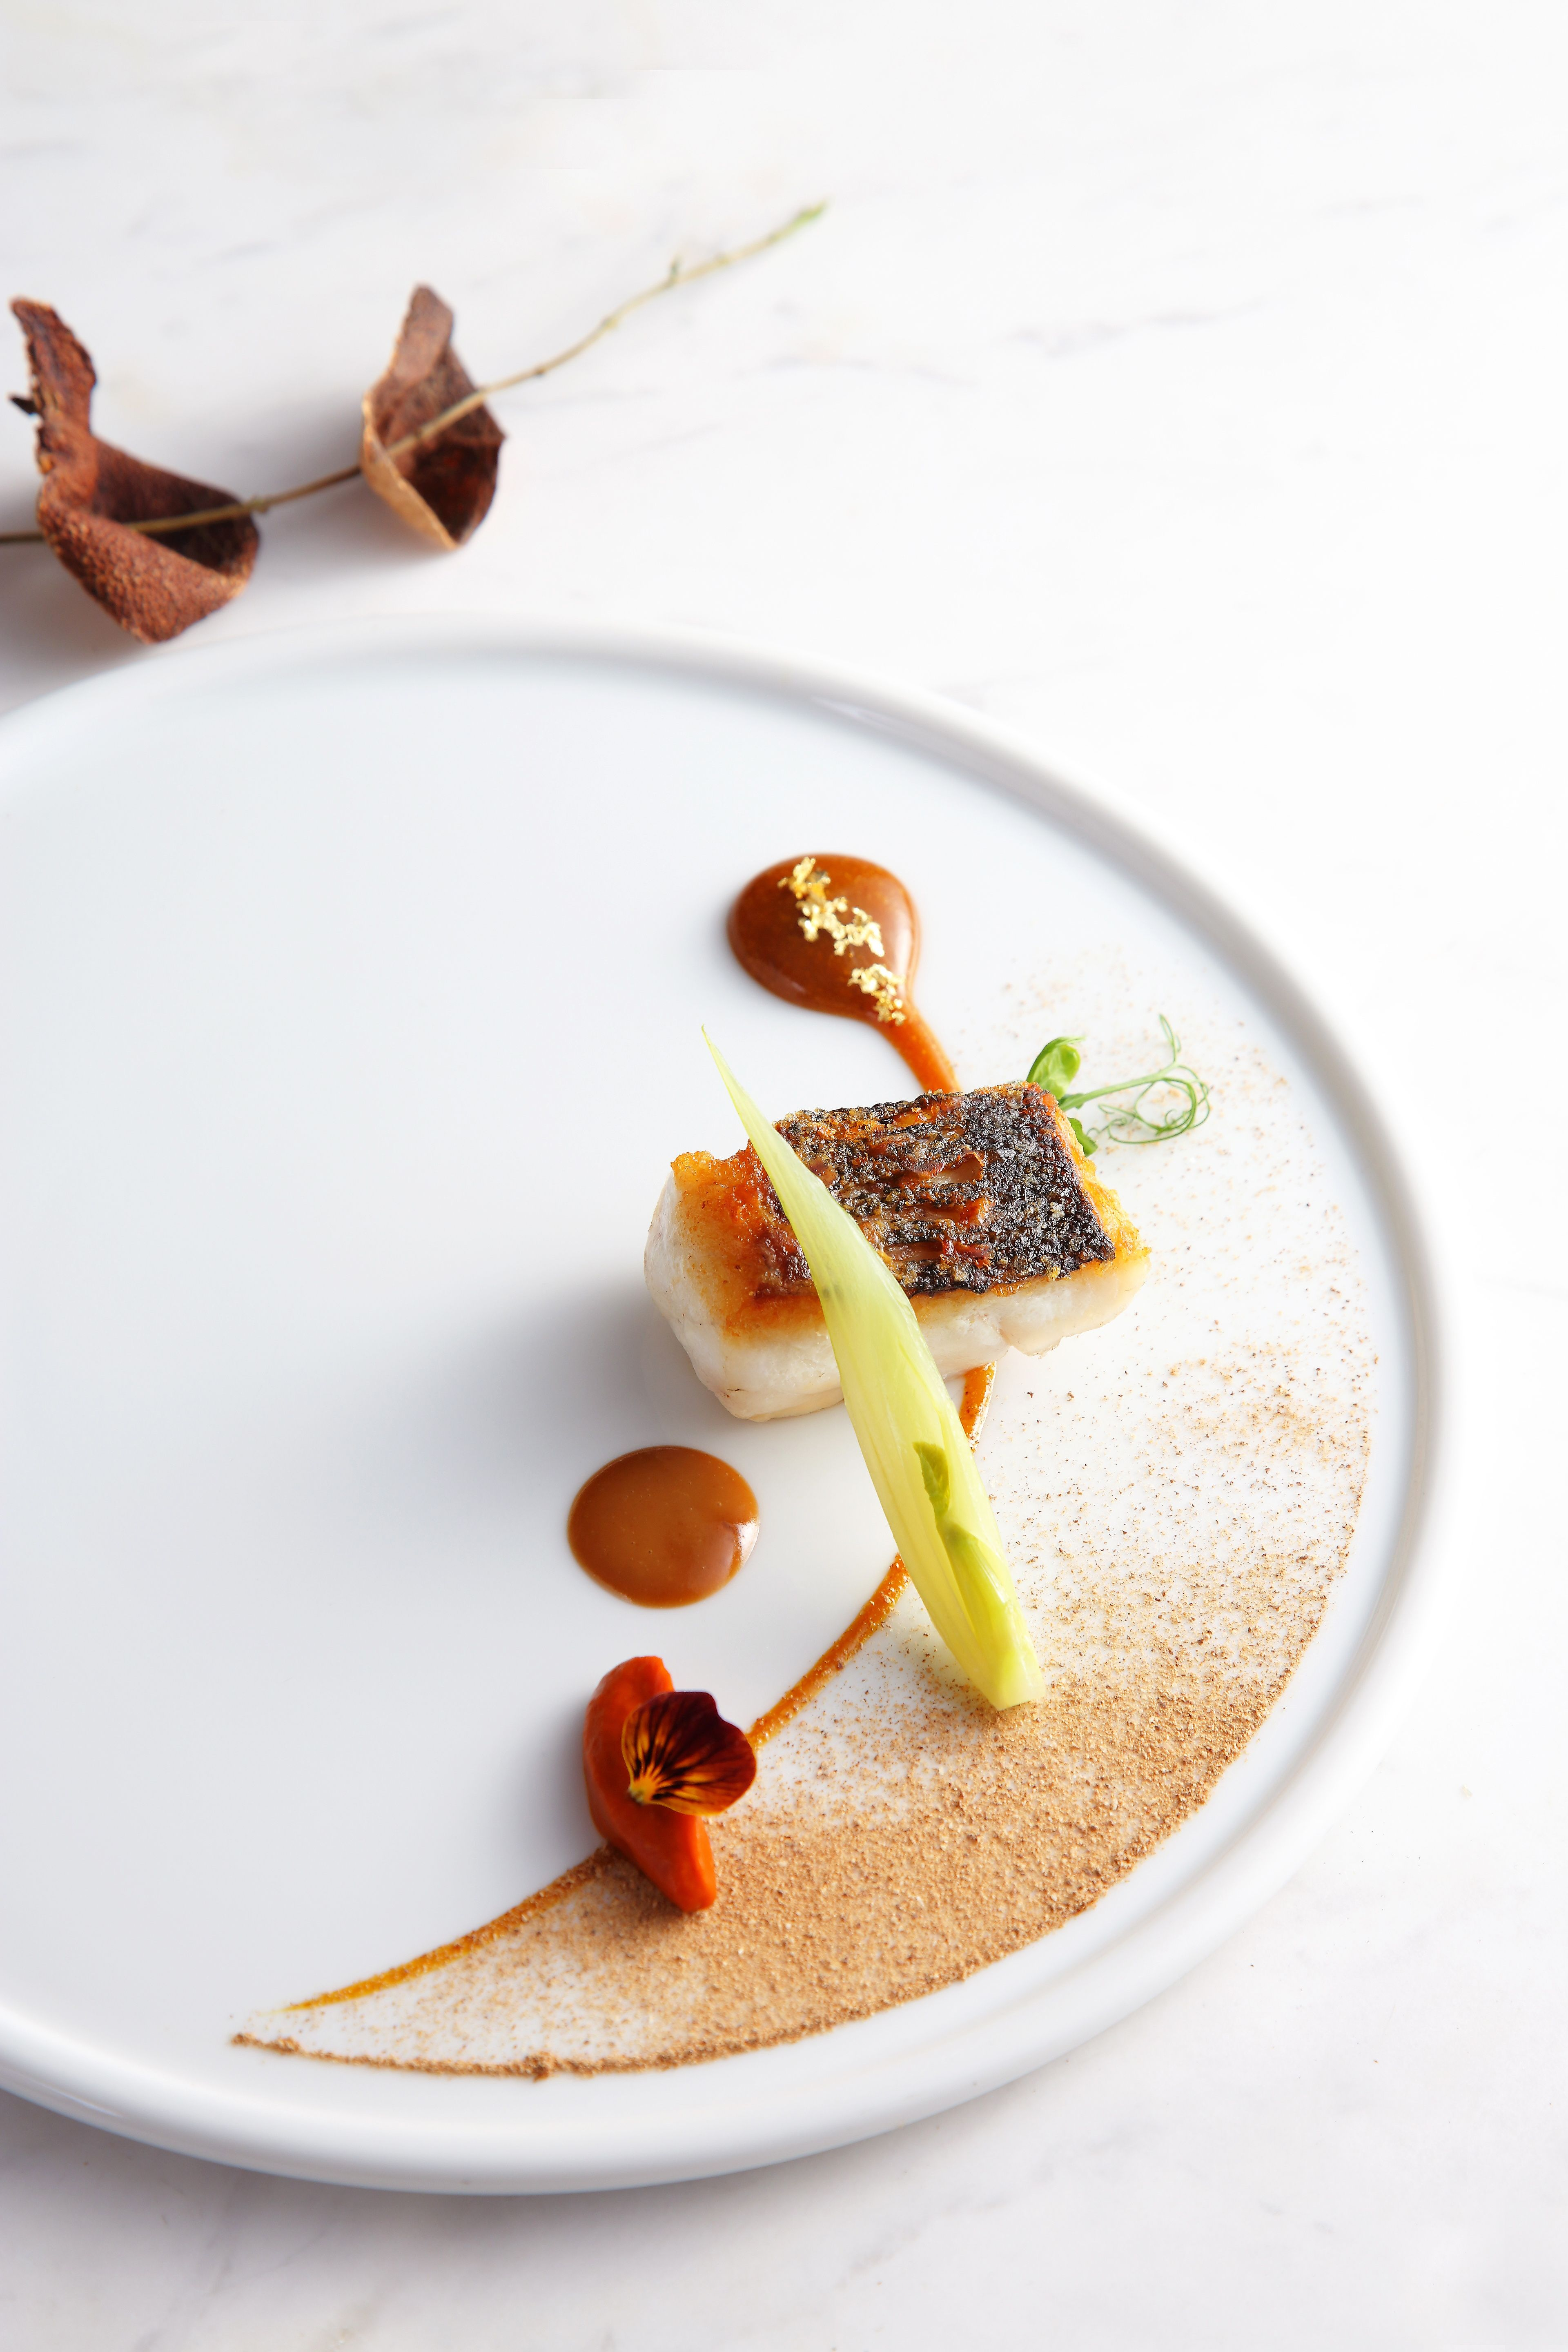 Tate tate dining room fine dining hong kong vicky lau for Fine dining food